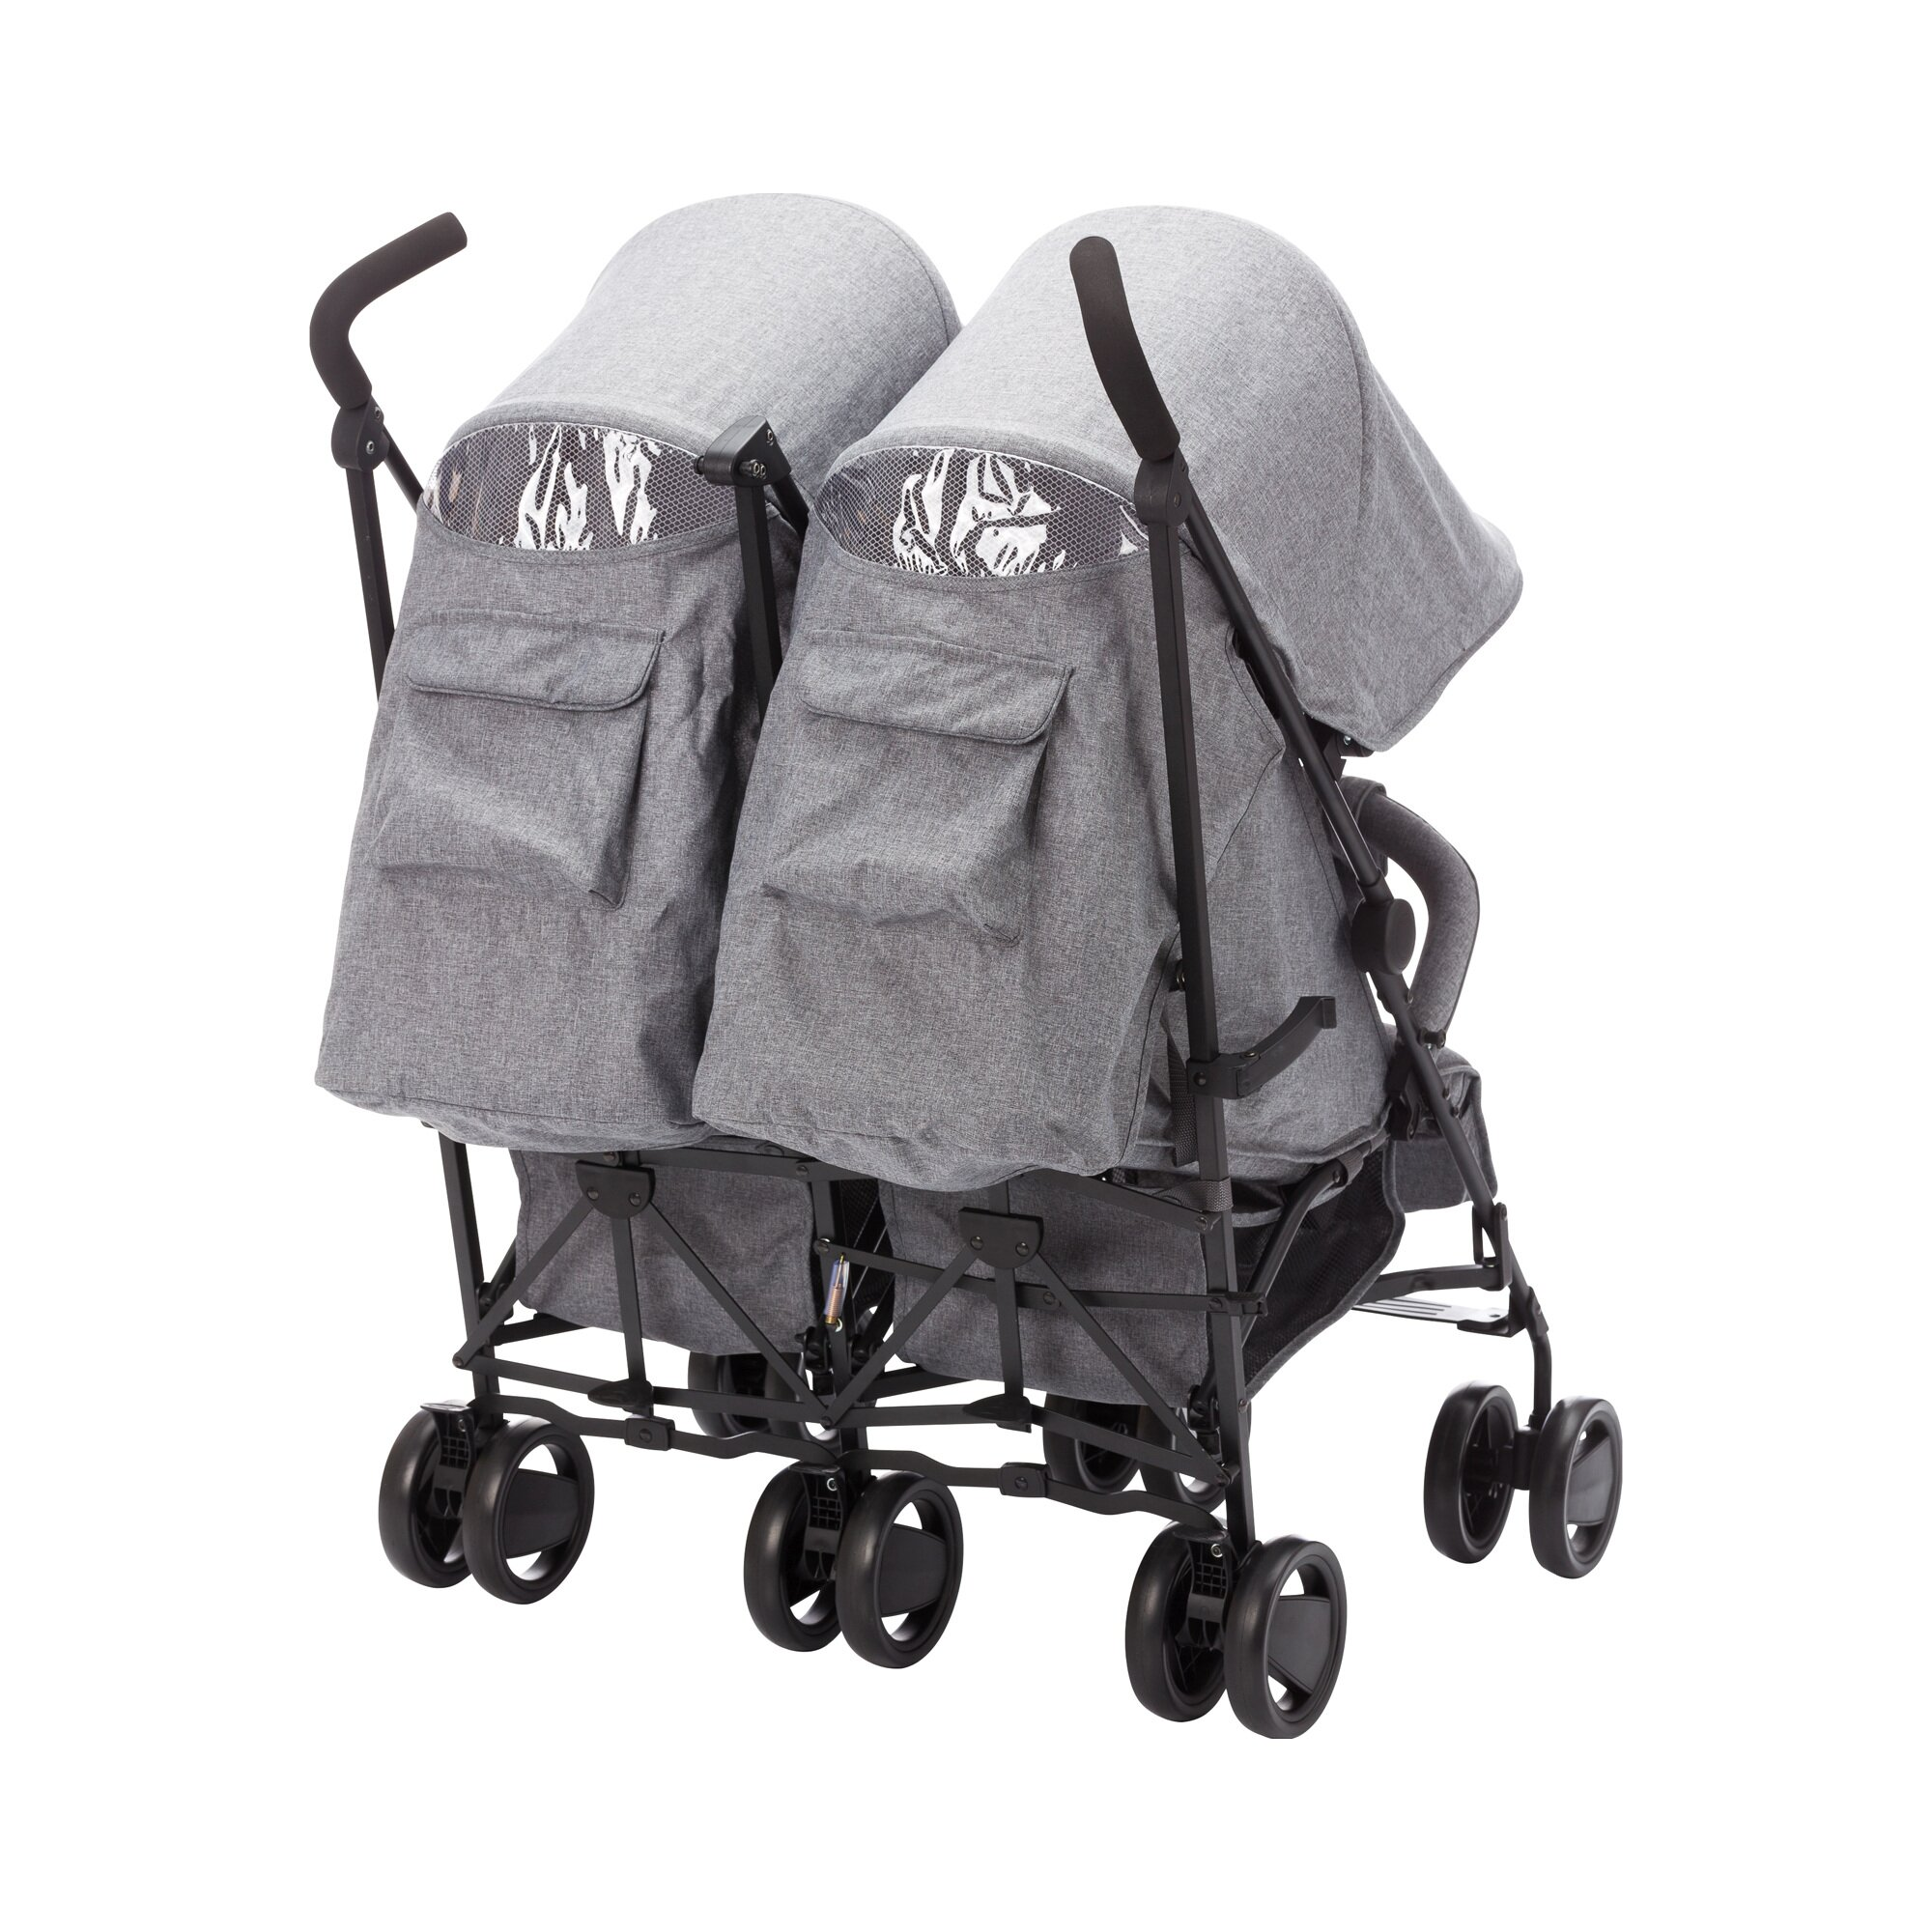 fill-twin-zwillingsbuggy-grau